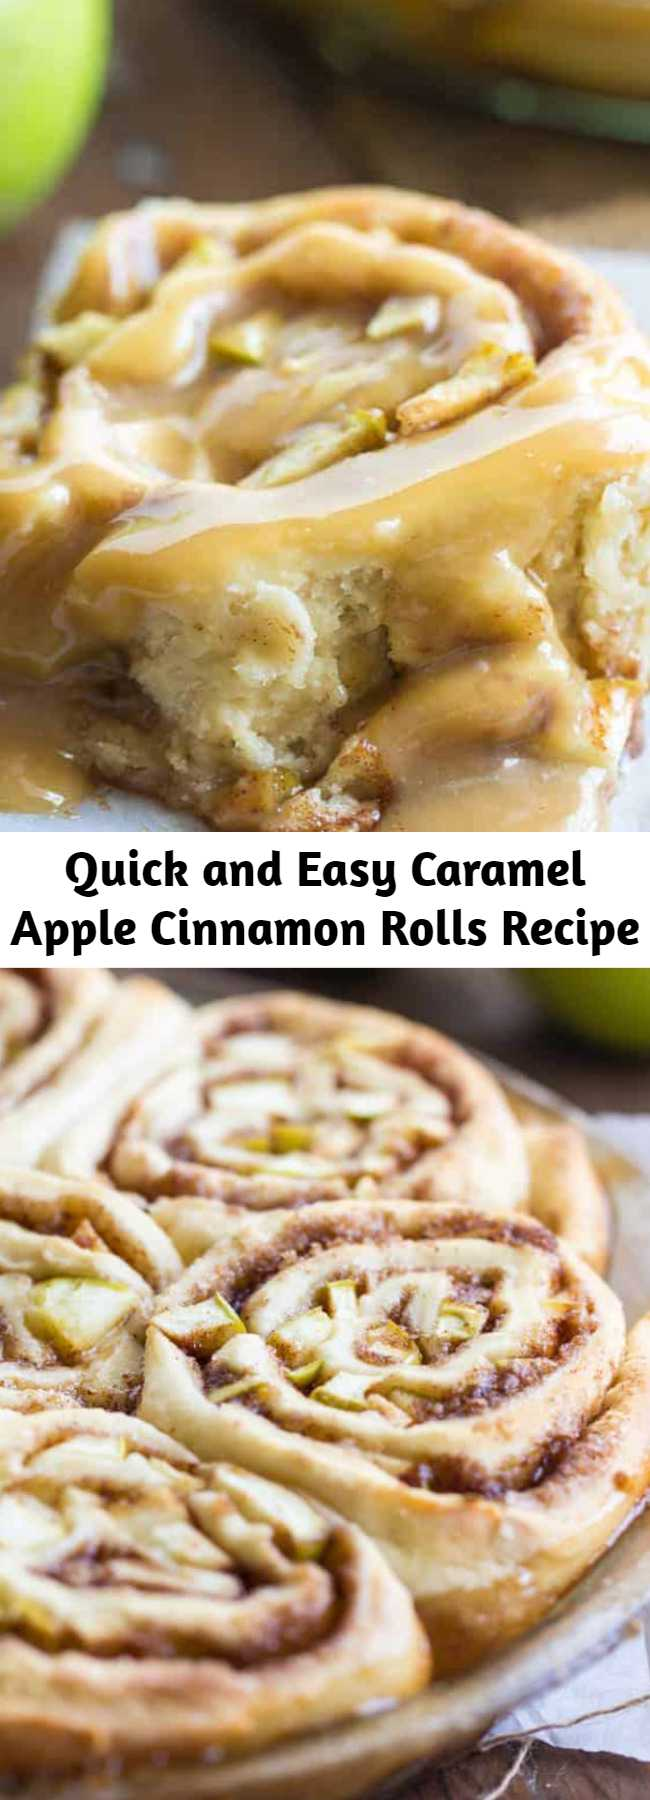 Quick and Easy Caramel Apple Cinnamon Rolls Recipe - Caramel Apple Cinnamon Rolls are a quick and easy cinnamon roll stuffed with real apples and drizzled with caramel. Ready within an hour!